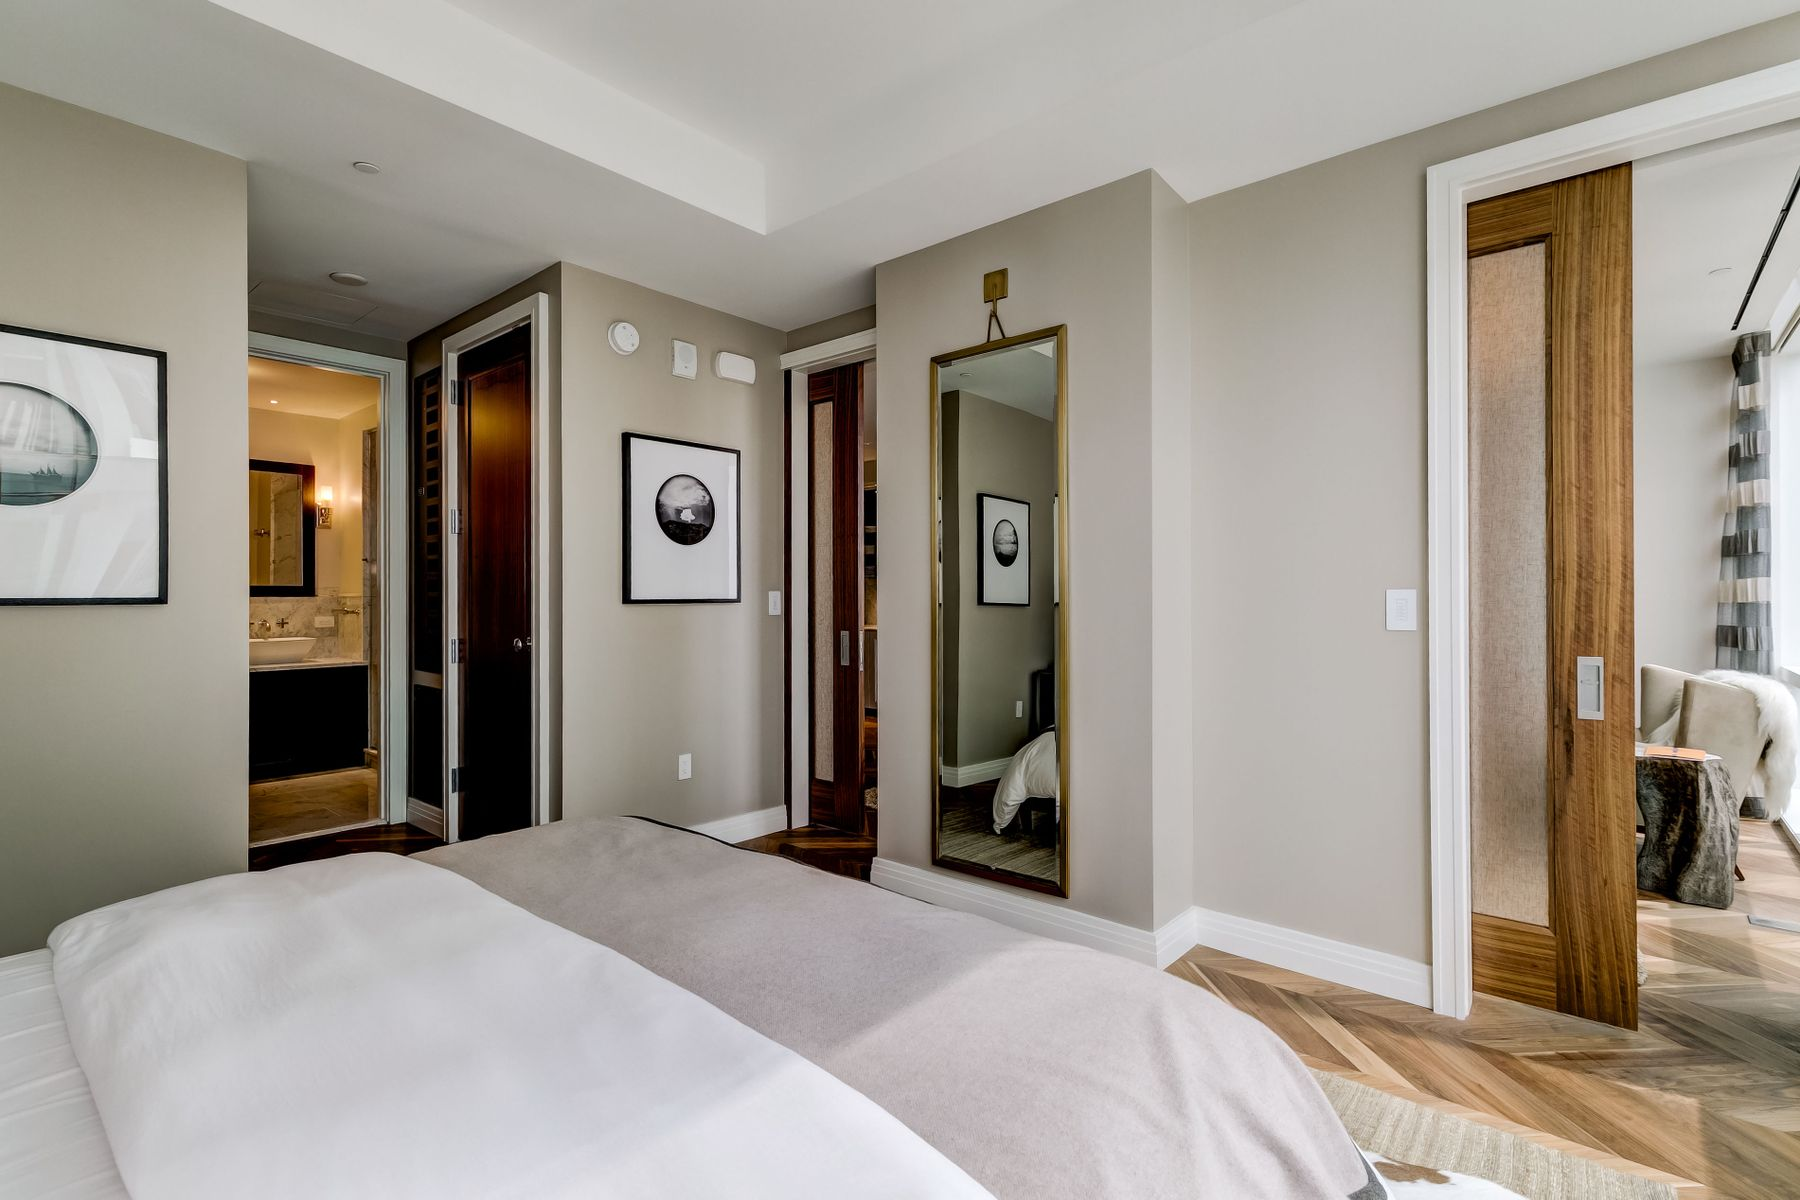 Additional photo for property listing at Four Seasons Residences 200 International Drive # 2007 Baltimore, Maryland 21202 United States